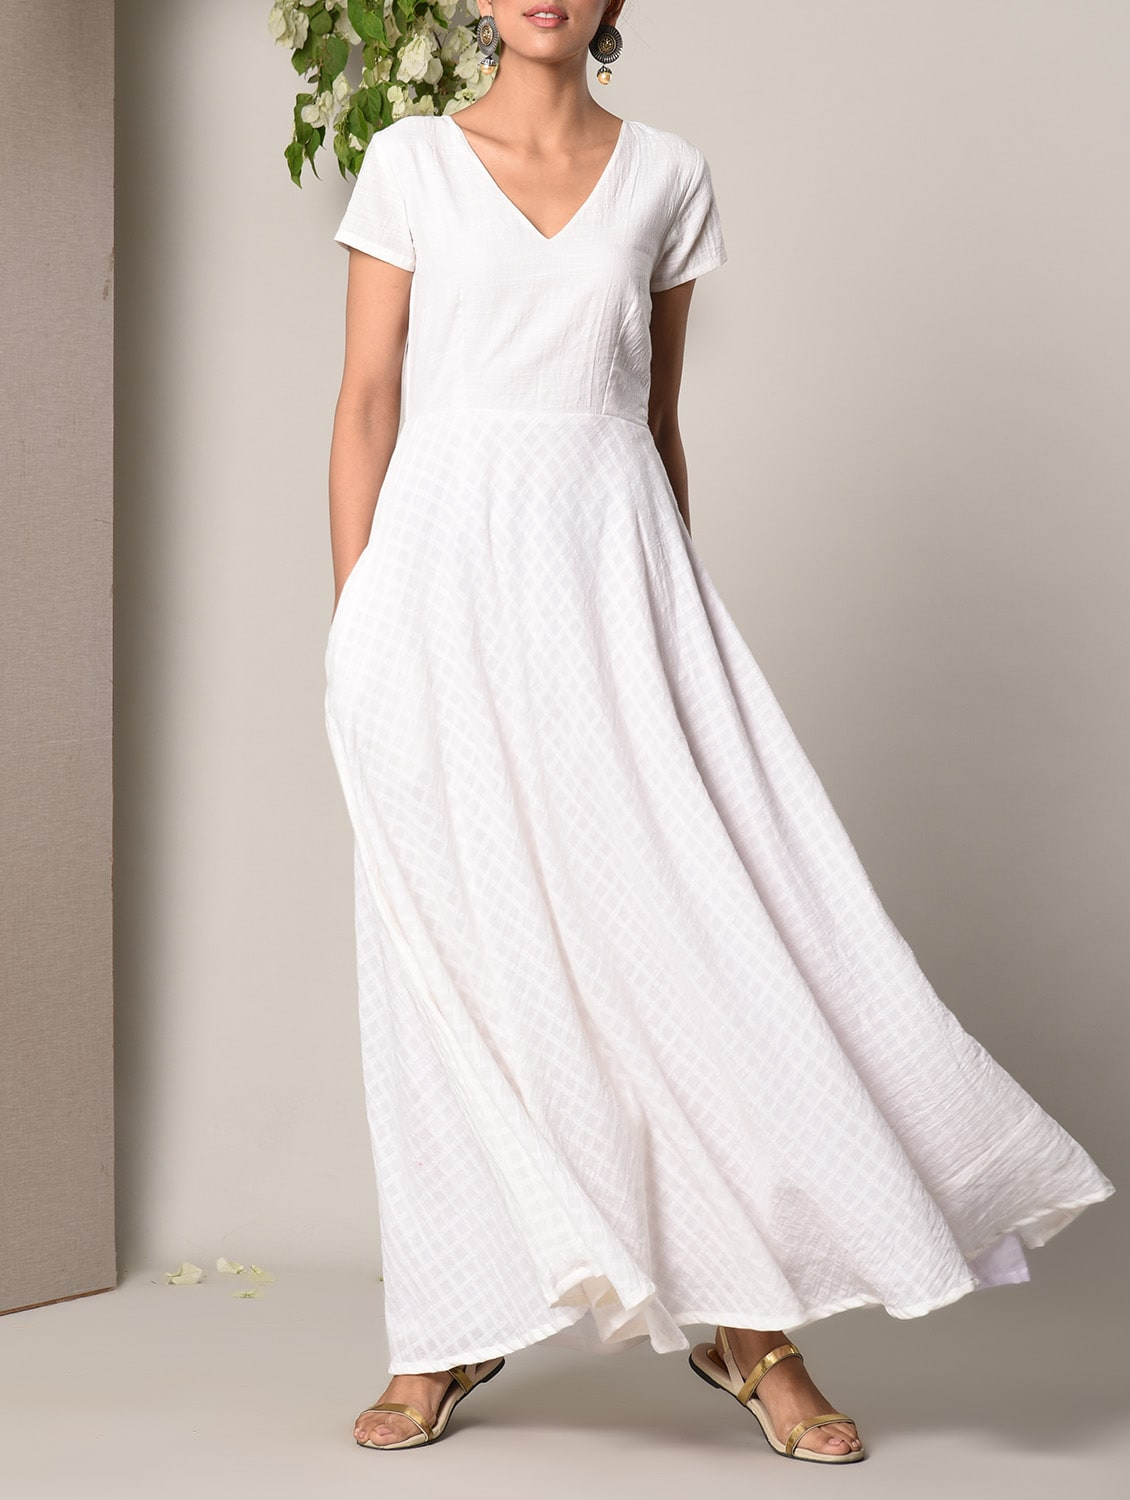 00800633904 Buy White Cotton Maxi Dress for Women from Truebrowns for ₹2428 at 19% off  | 2019 Limeroad.com